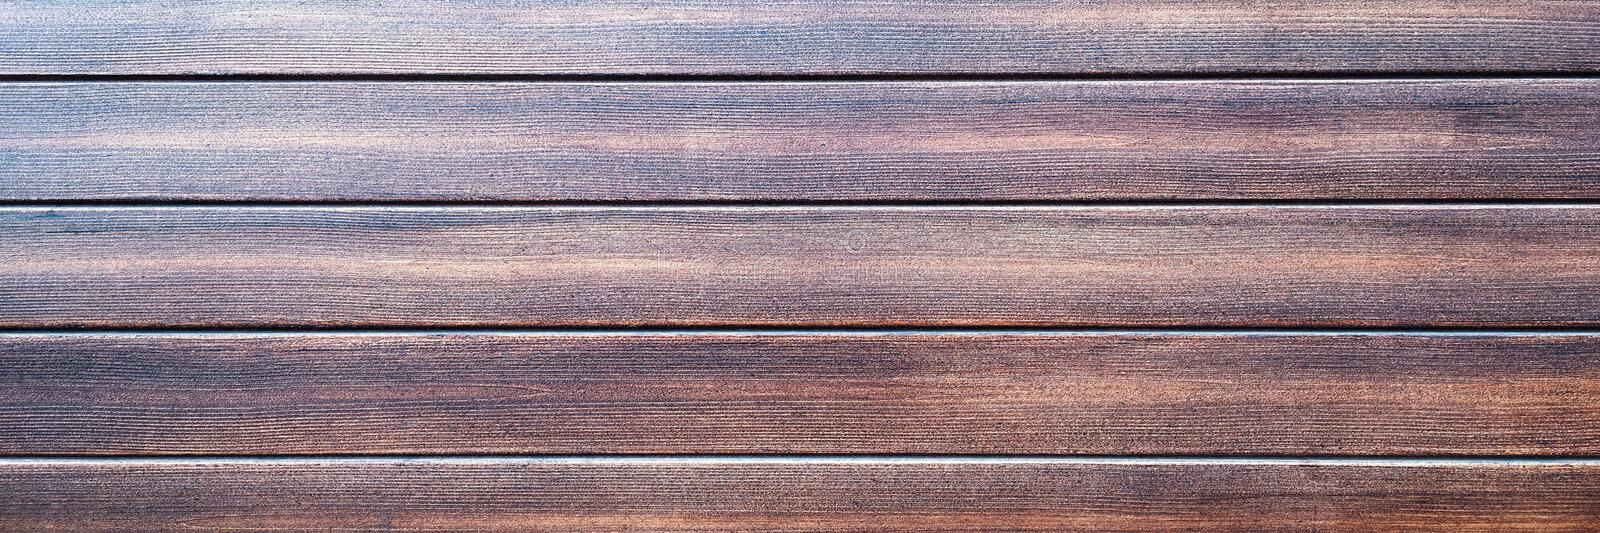 Wood texture background, wood planks. Old washed wood table pattern top view. Wood texture background, wood planks. Old washed wood table pattern top view royalty free stock images